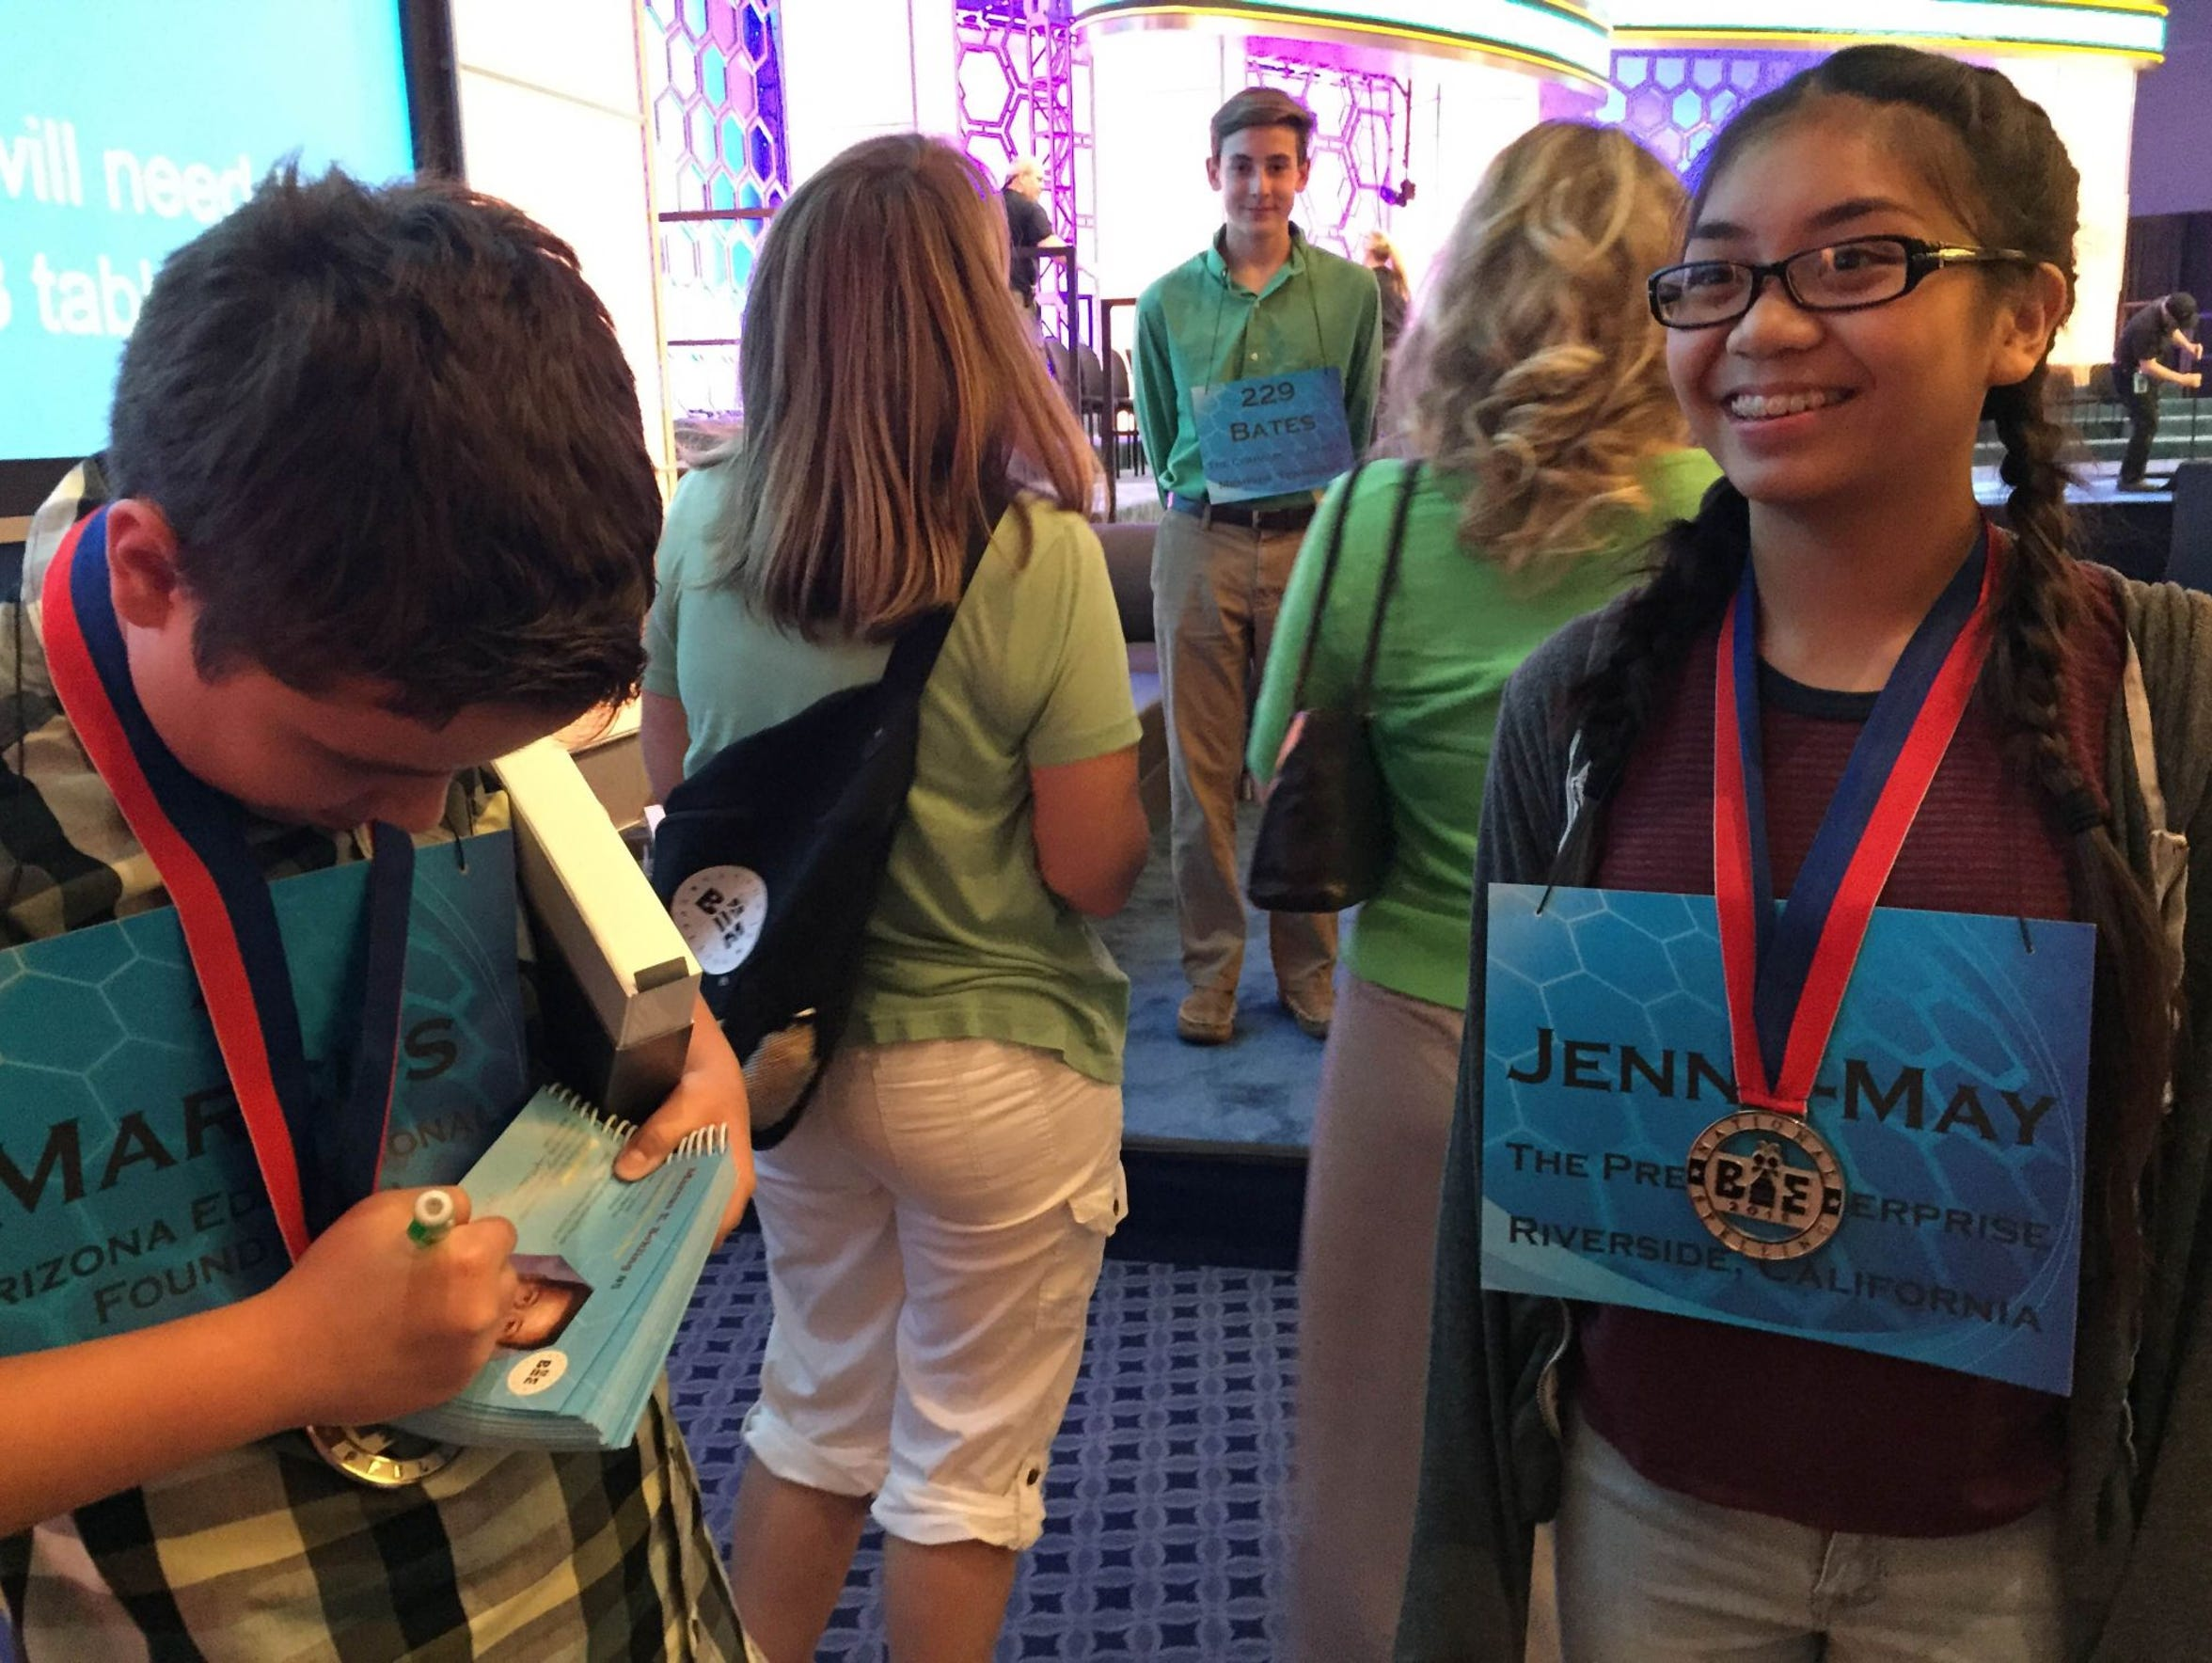 Speller Jenna-May Ingal of California asks for an autograph